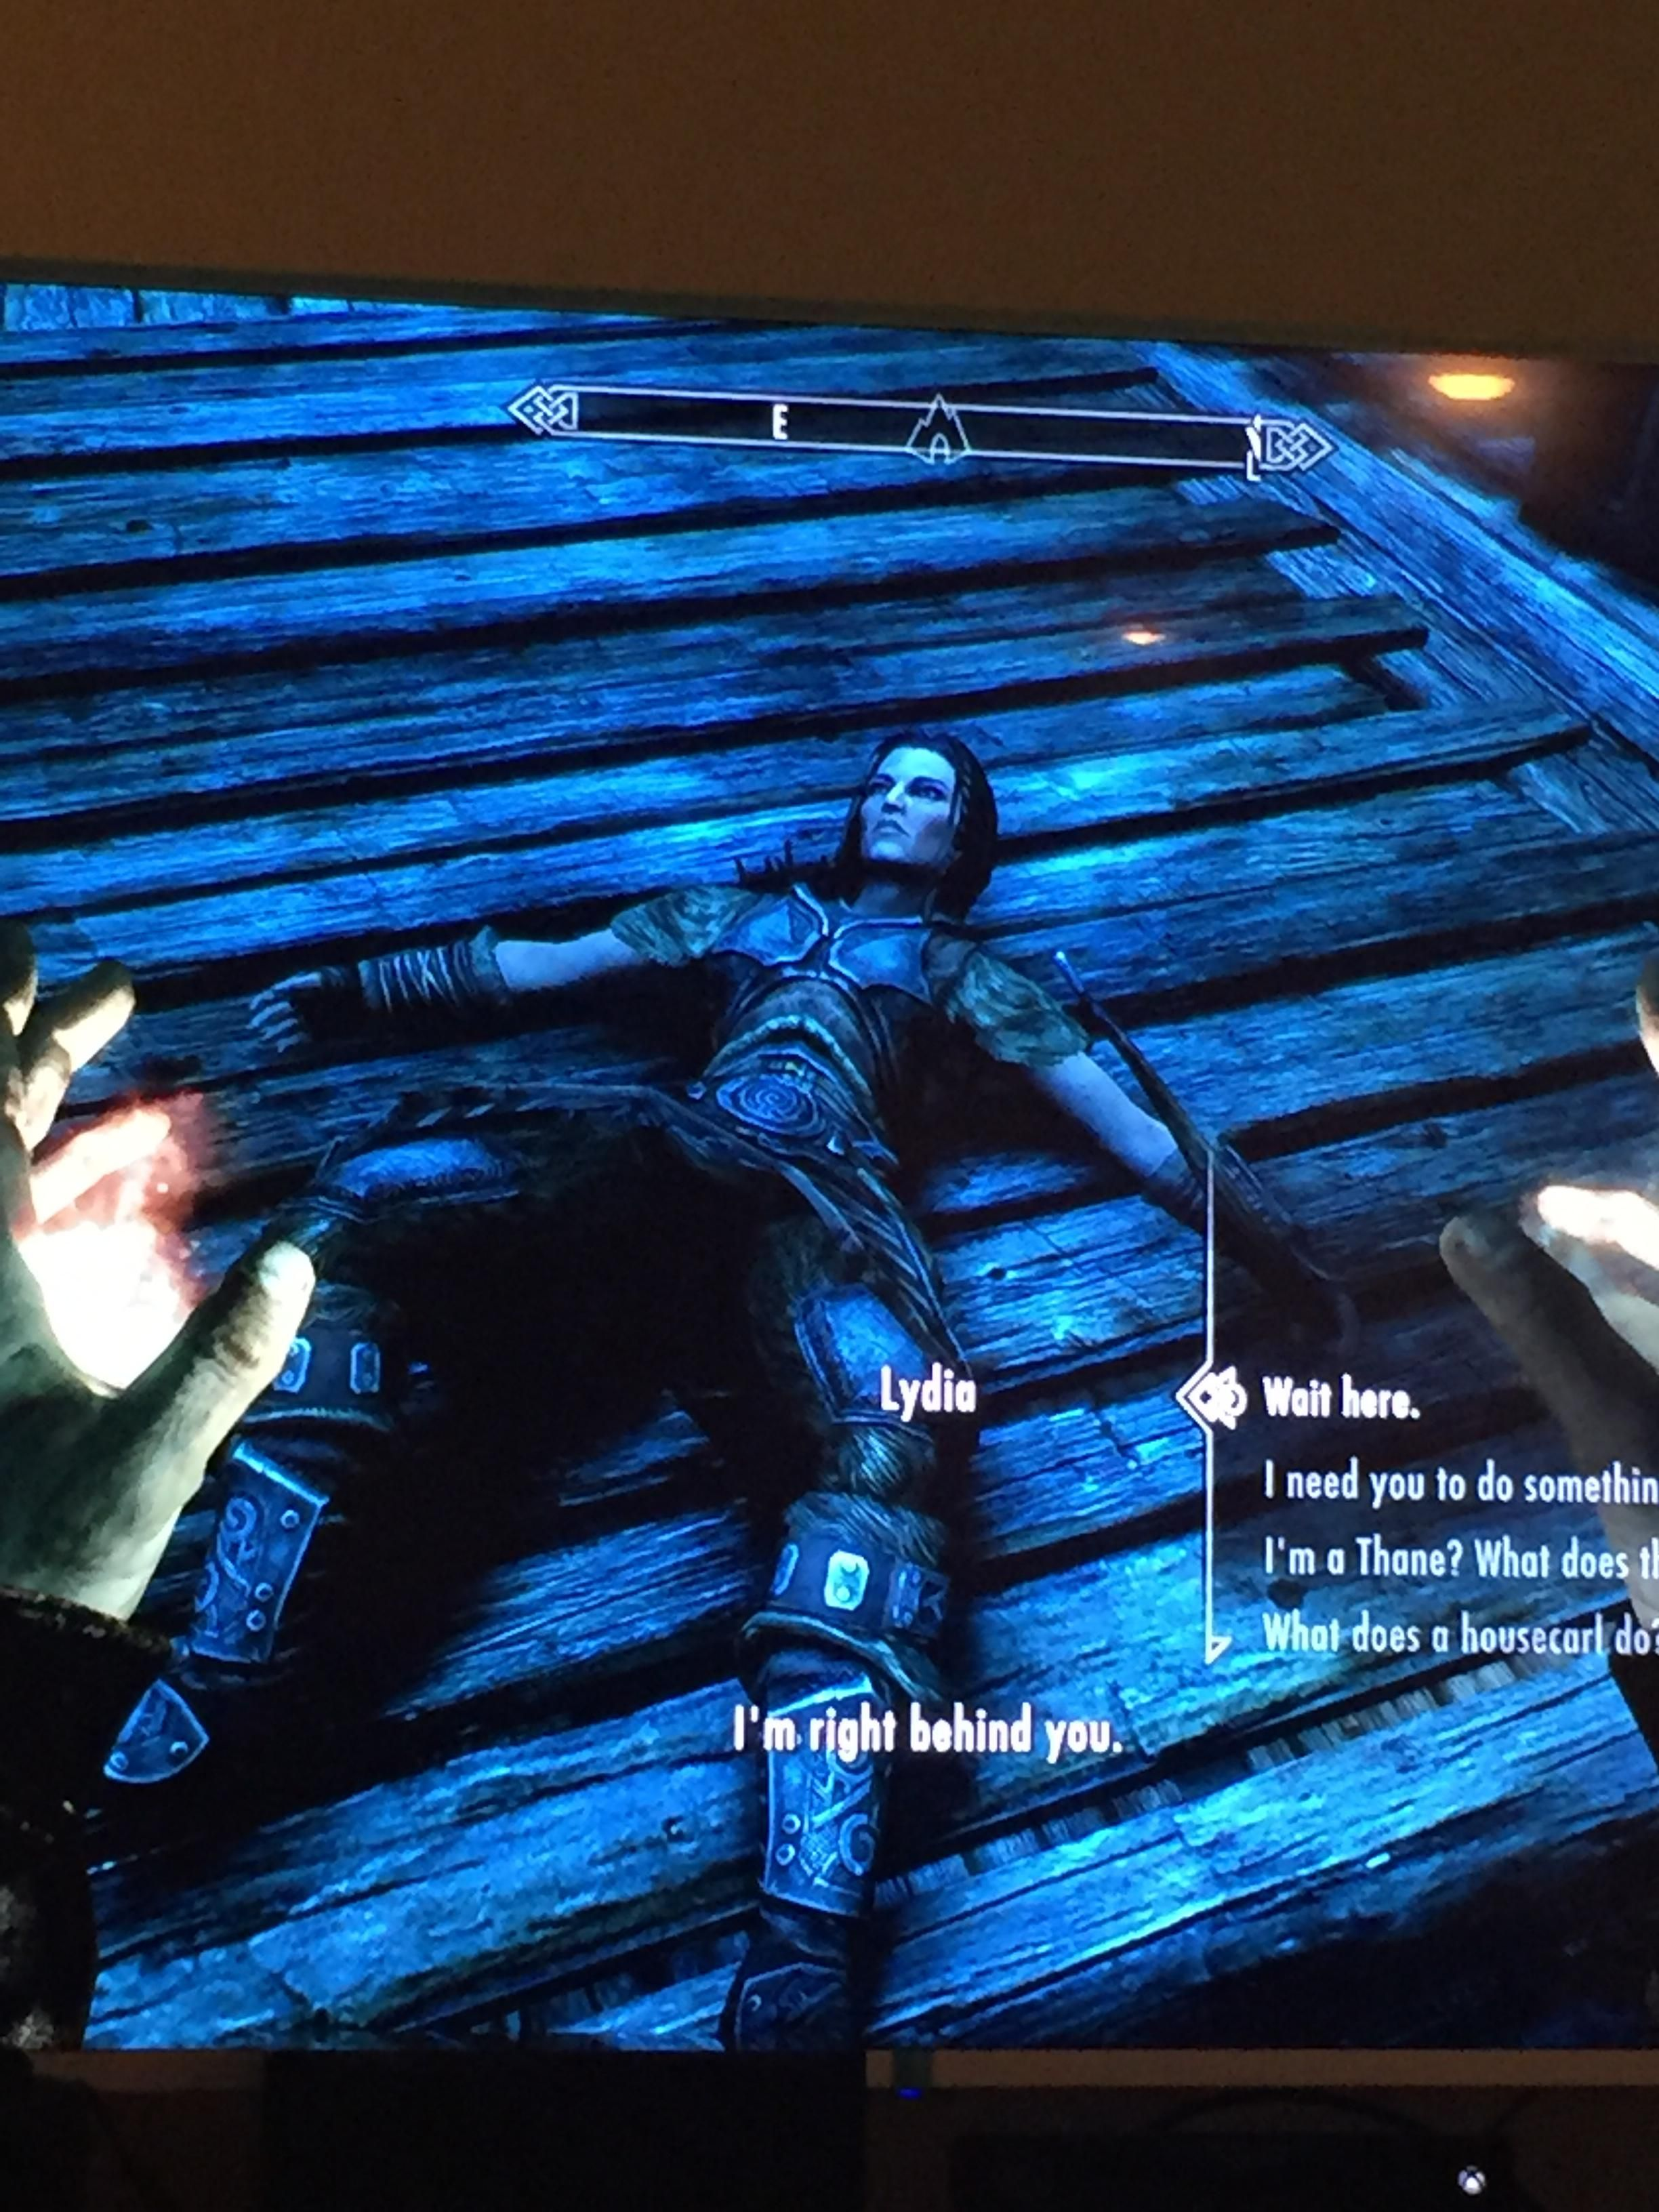 Left Lydia to die after finding out I can't fight giants